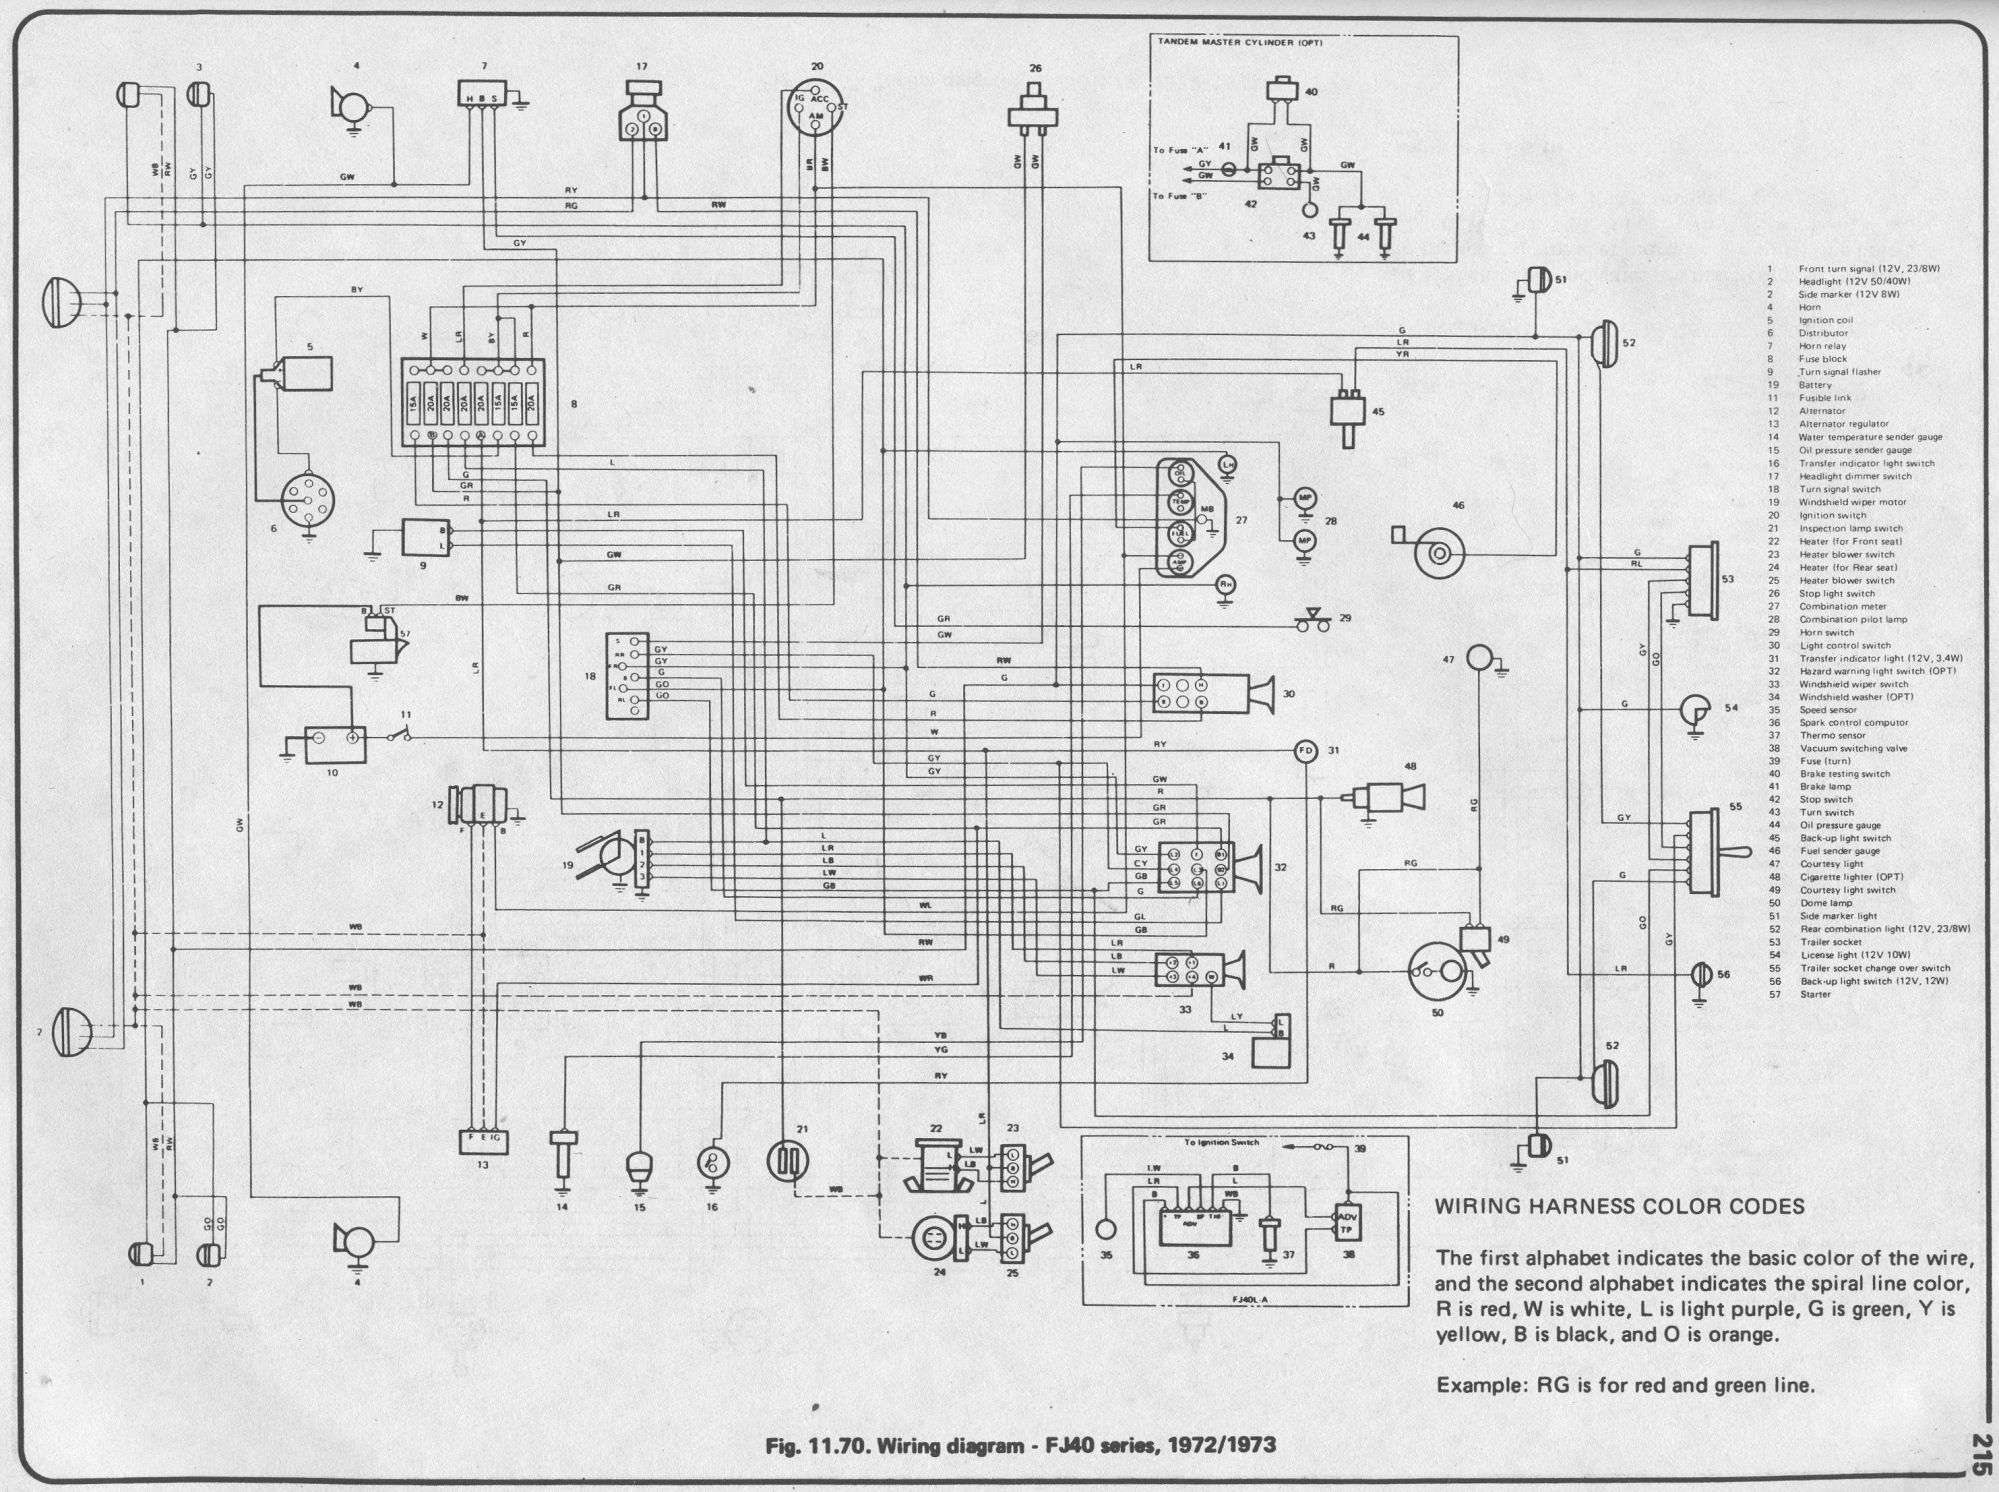 hight resolution of fj55 wiring diagram wiring diagram papercoolerman u0027s electrical schematic and fsm file retrieval fj55 wiring